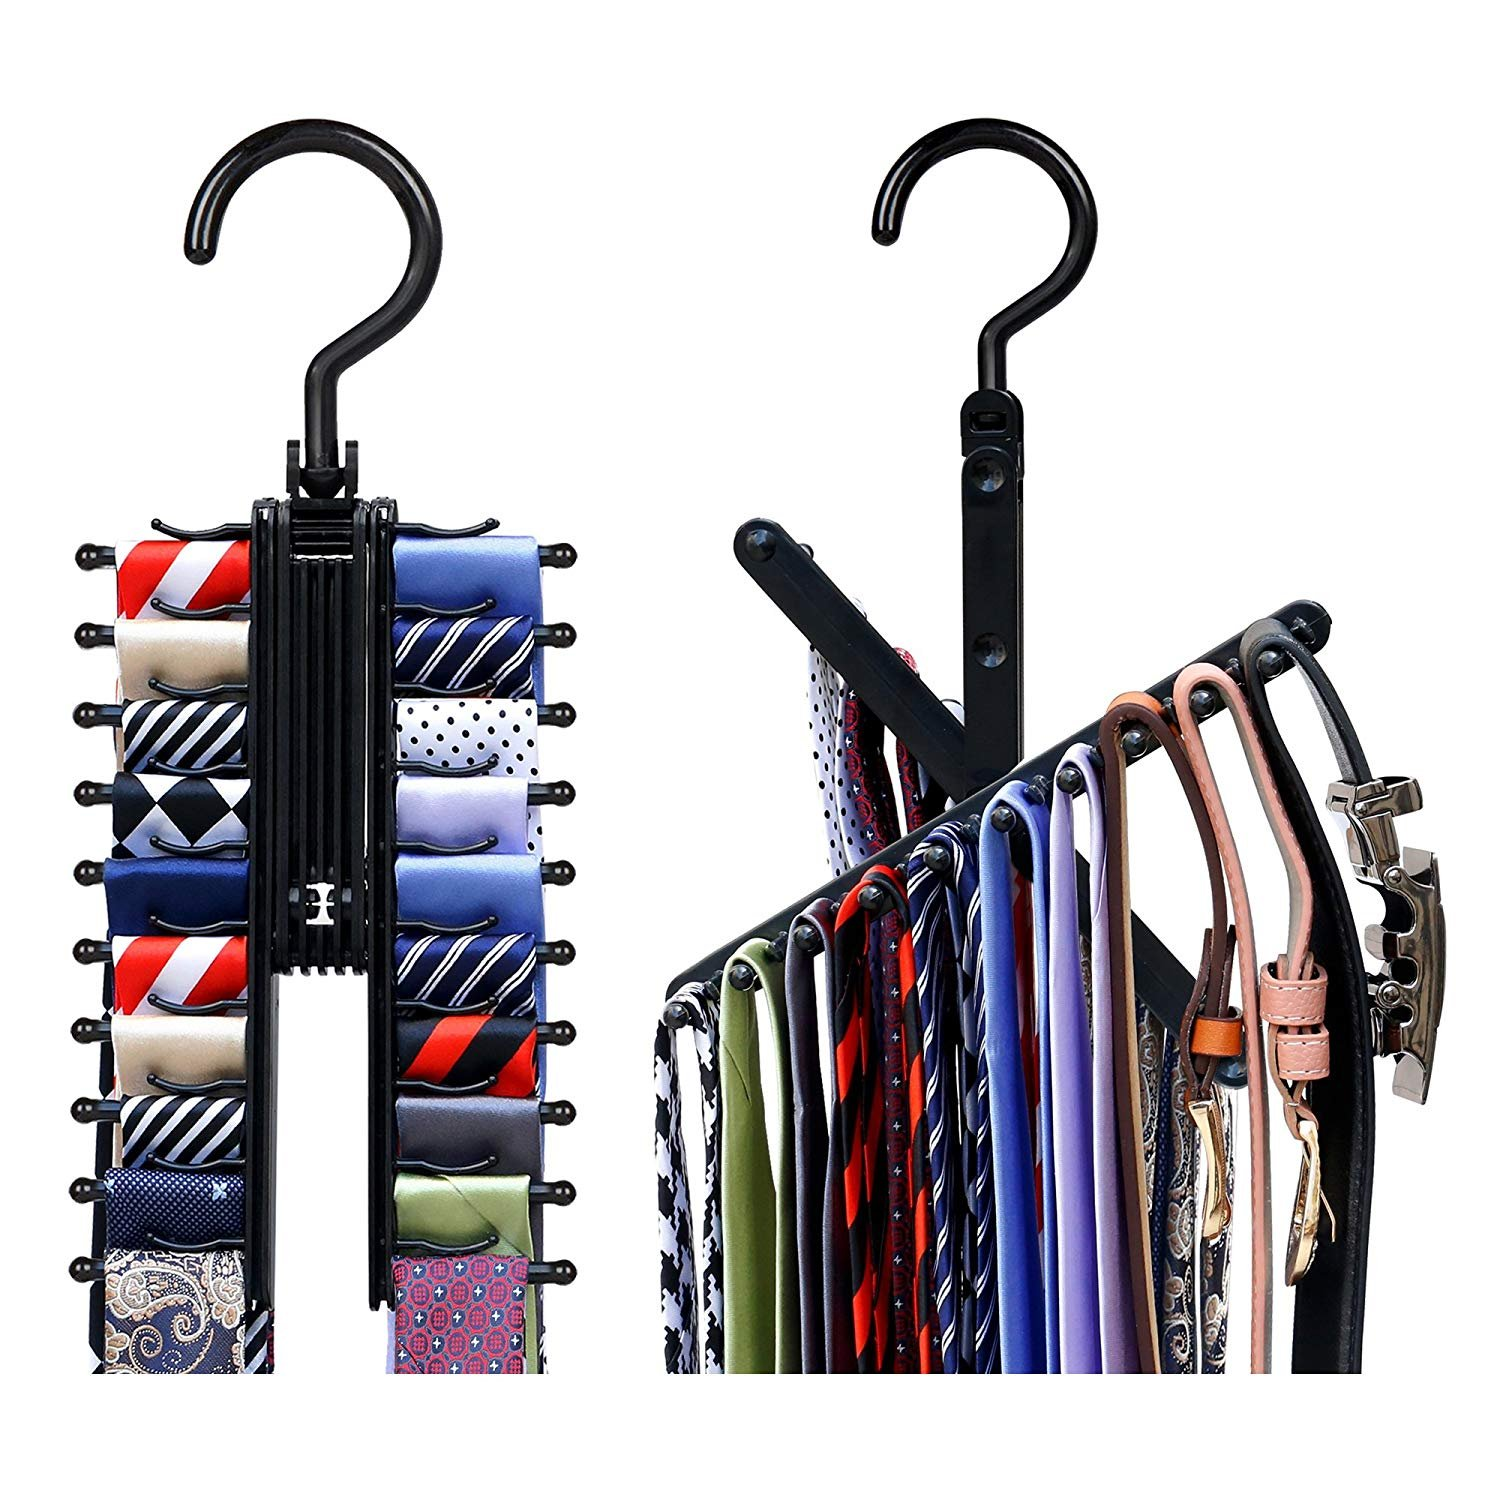 Rotate to Open/Close Upgraded Secure Tie Belt Racks,See Everything Extended Cross X Tie Hanger Organizer,Space Saving Black Non-Slip Clips Holder Hang up to 20 Ties 360 Degree Swivel Erlvery DaMain